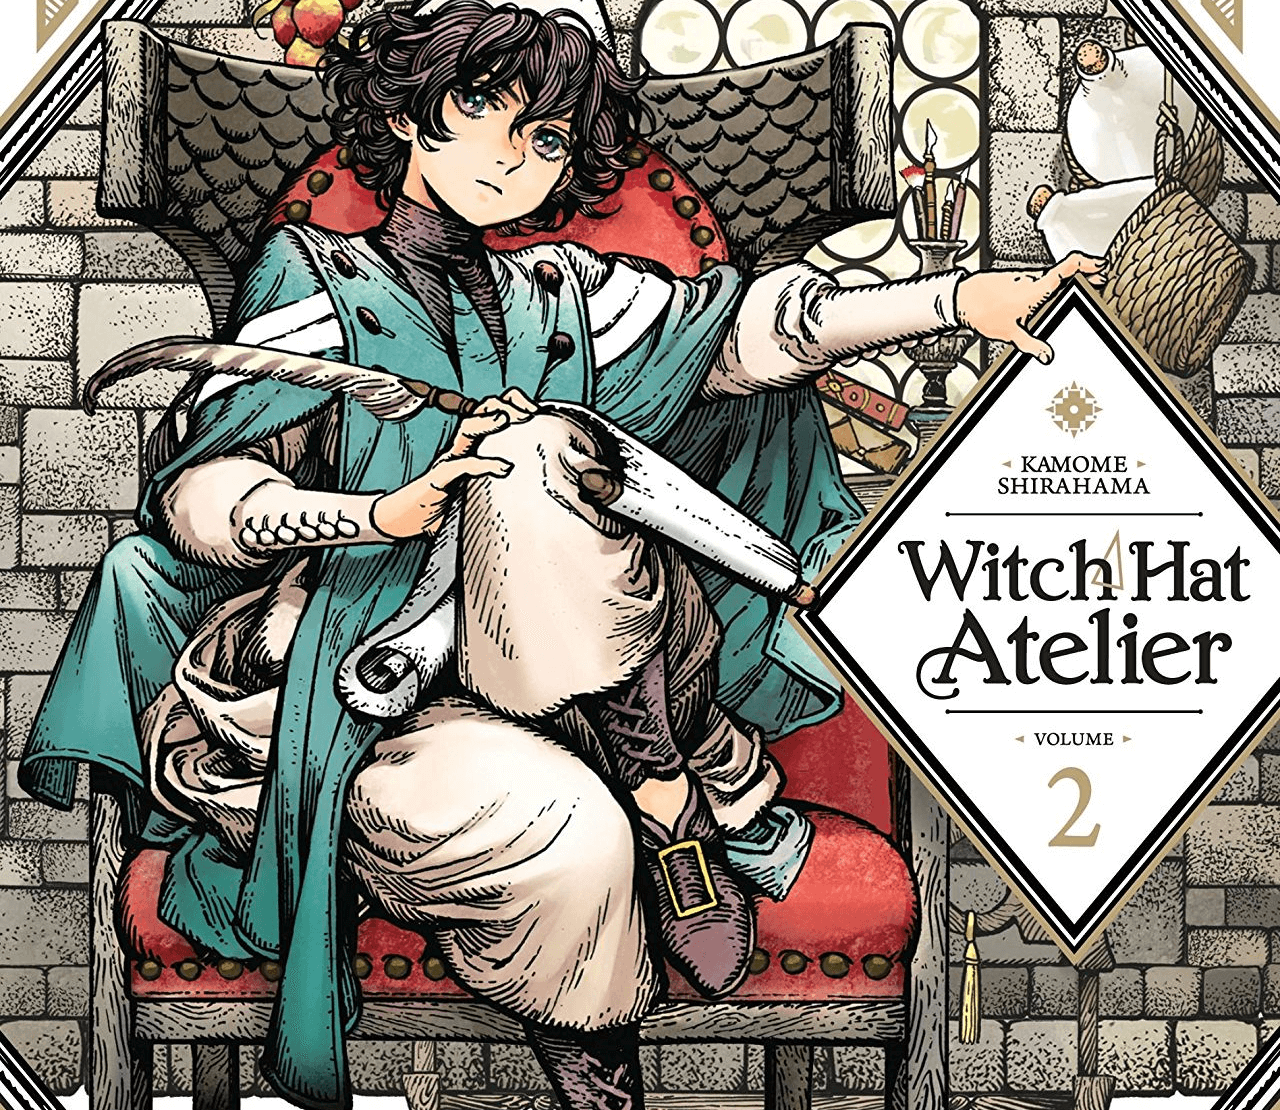 Witch Hat Atelier Vol. 2 Review